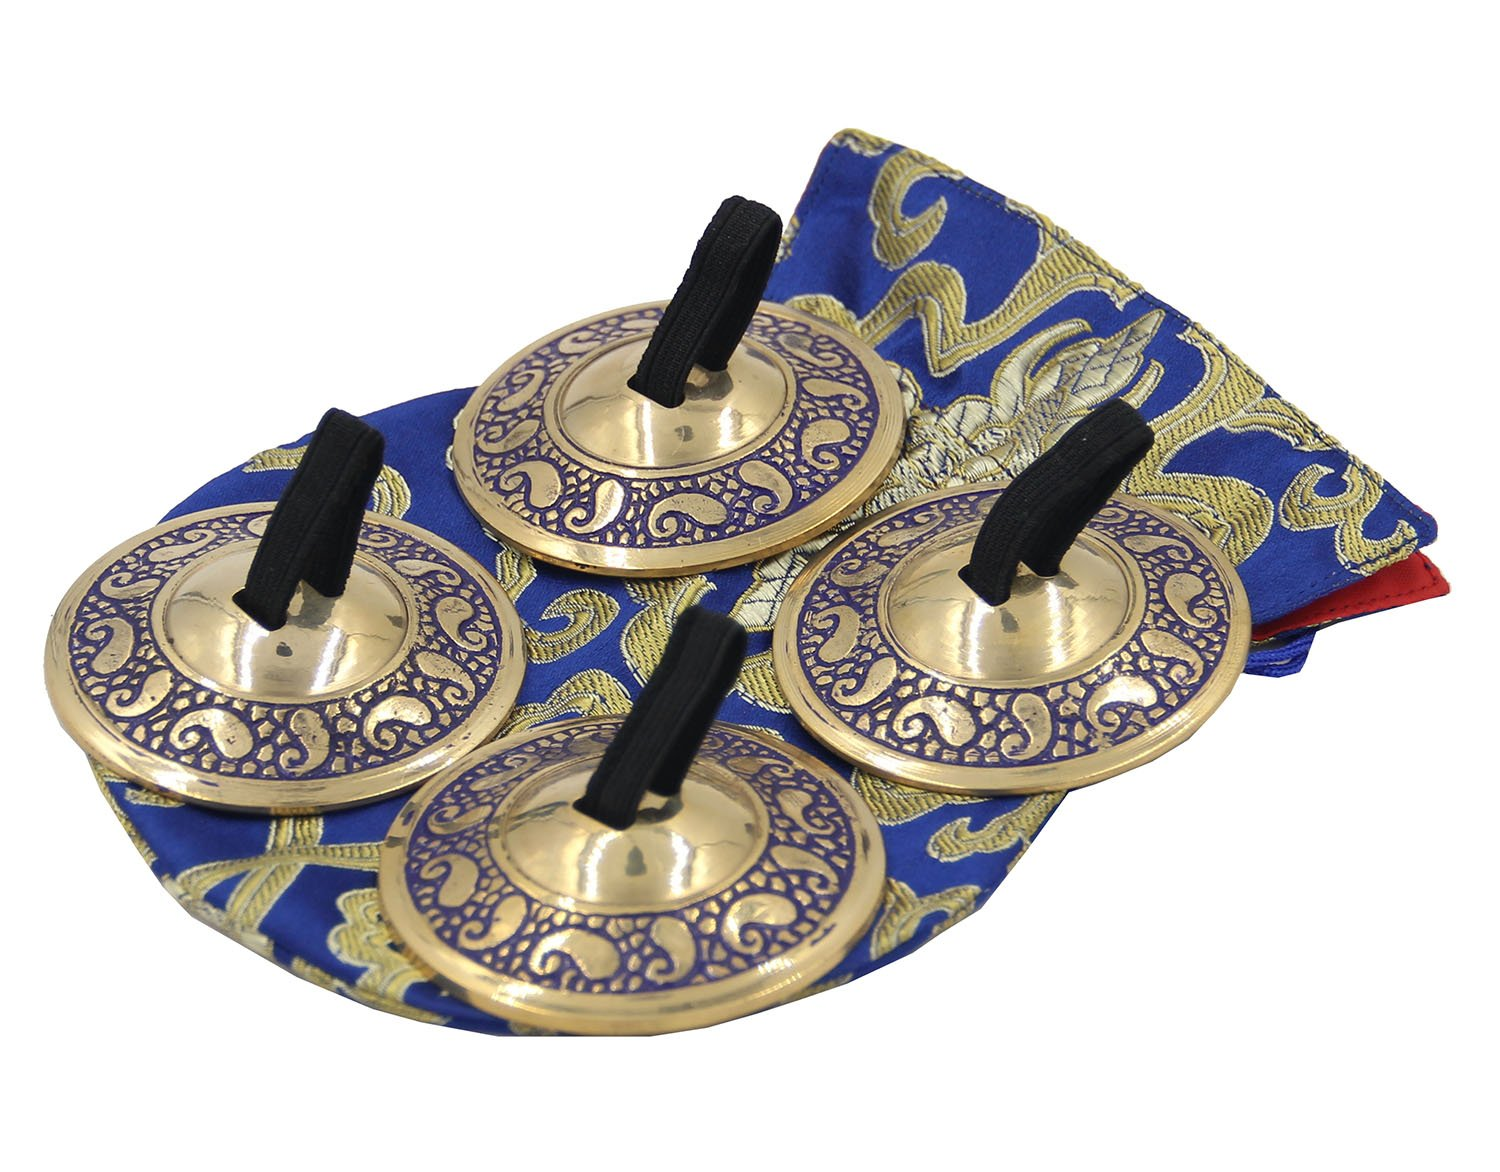 DharmaObjects 2 Pairs Pro Brass Fingers Cymbal Zills Belly Dancing Free Silk Pouch (Blue) by Lungta Imports